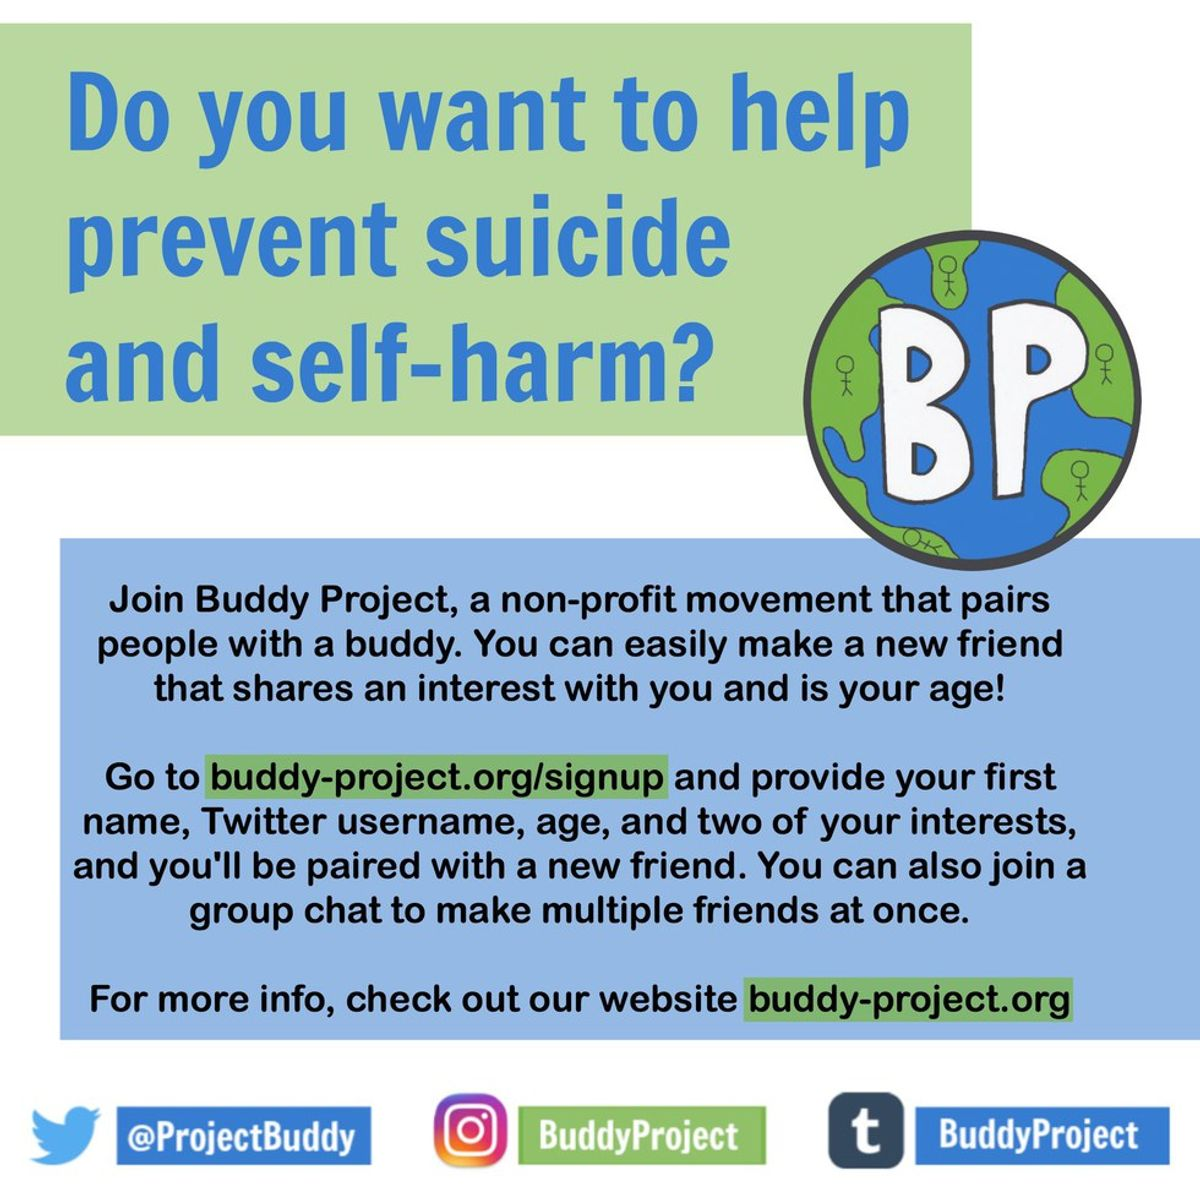 My Experience With The Buddy Project